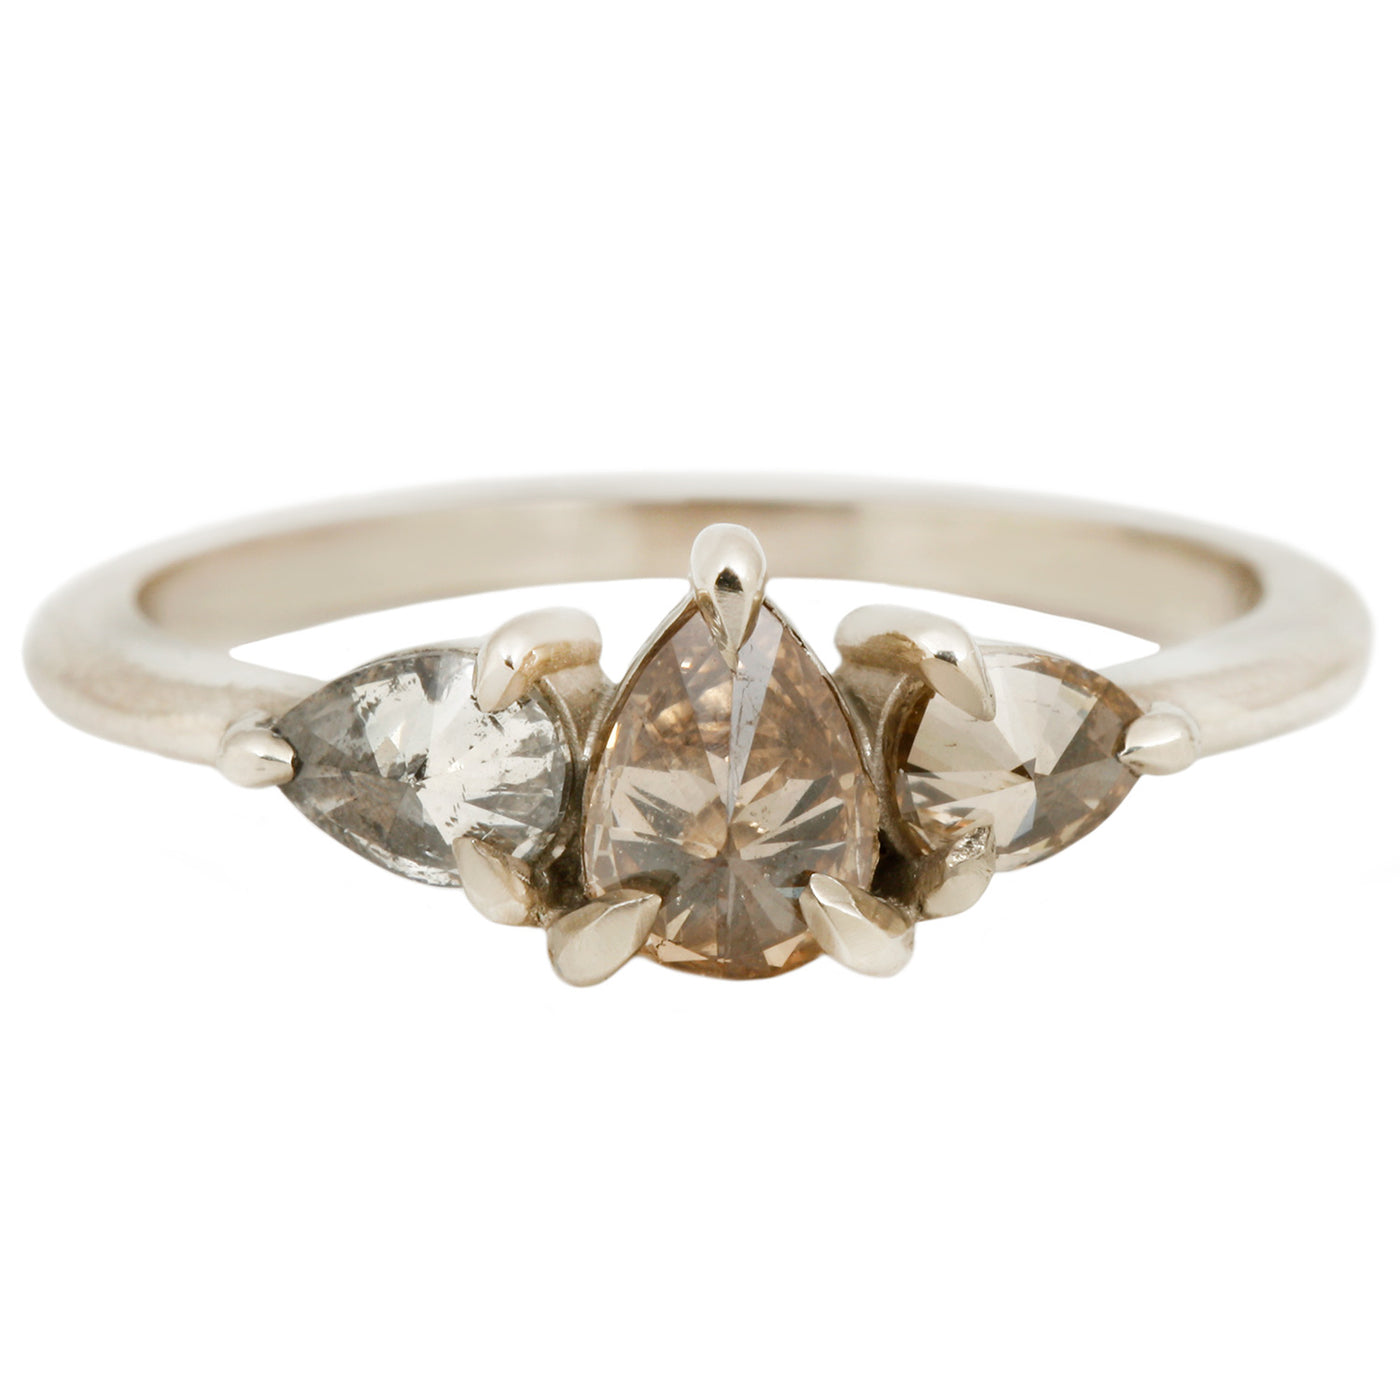 Lauren Wolf Jewelry Inverted Three Diamond Ring